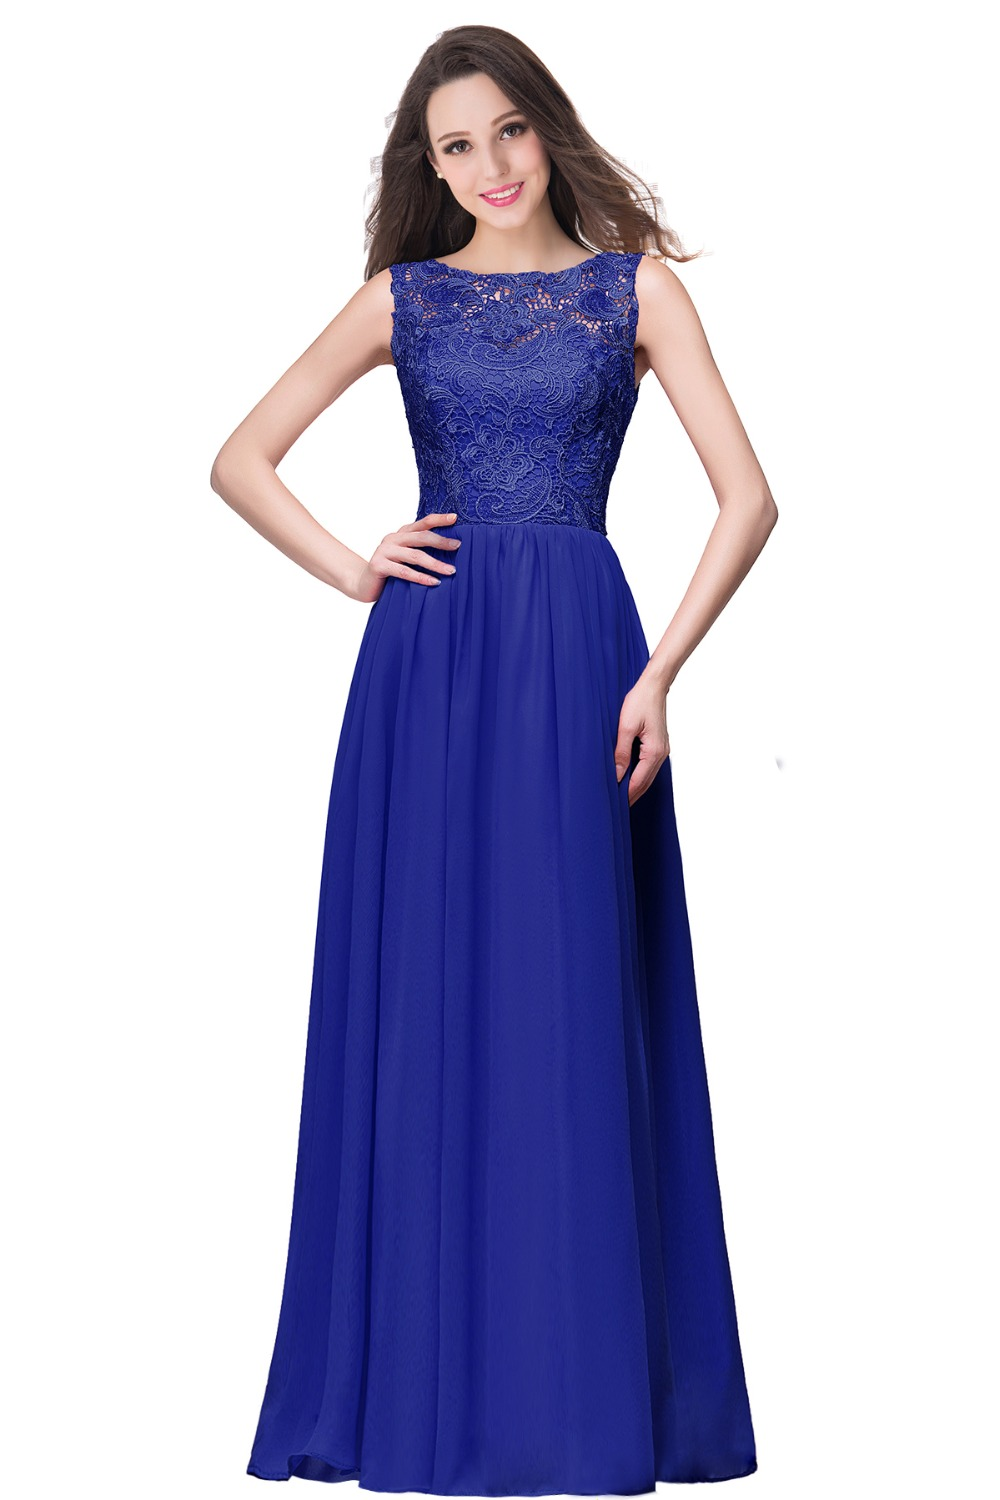 robe demoiselle d 39 honneur real image purple mint green navy blue lace bridesmaid dresses long. Black Bedroom Furniture Sets. Home Design Ideas